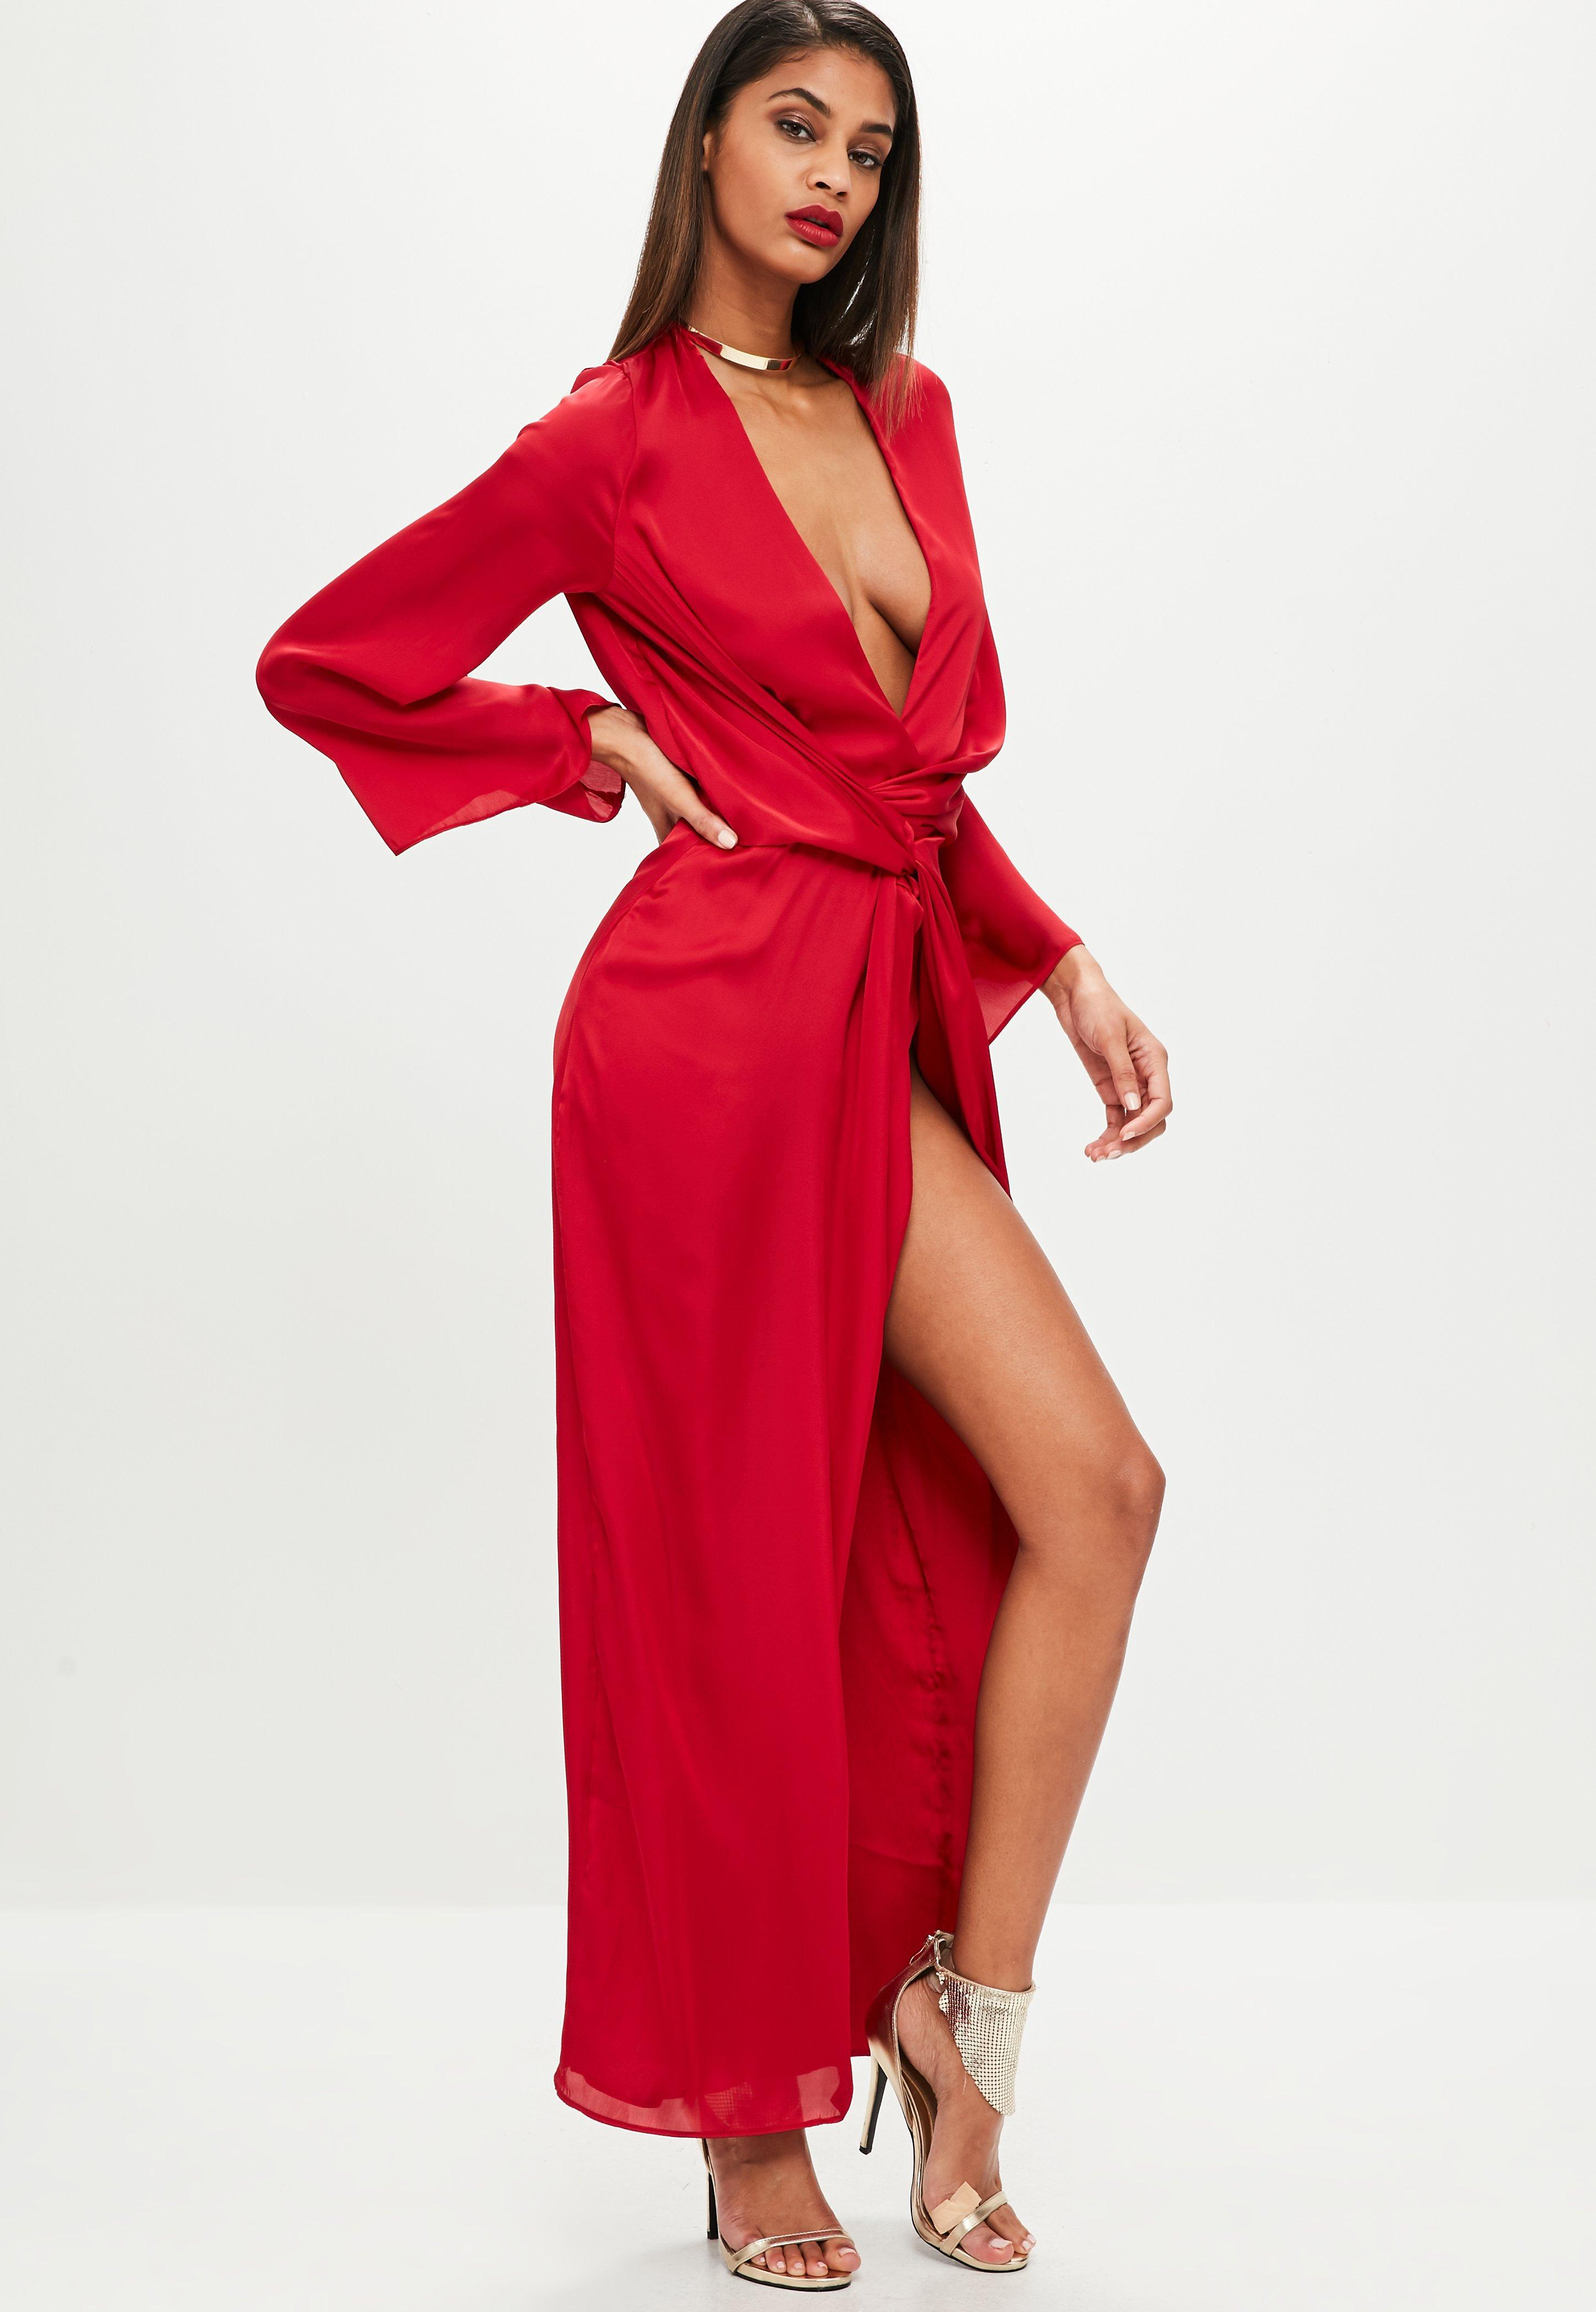 Lyst - Missguided Red Satin Plunge Kimono Maxi Dress in Red 4e7cffaf2